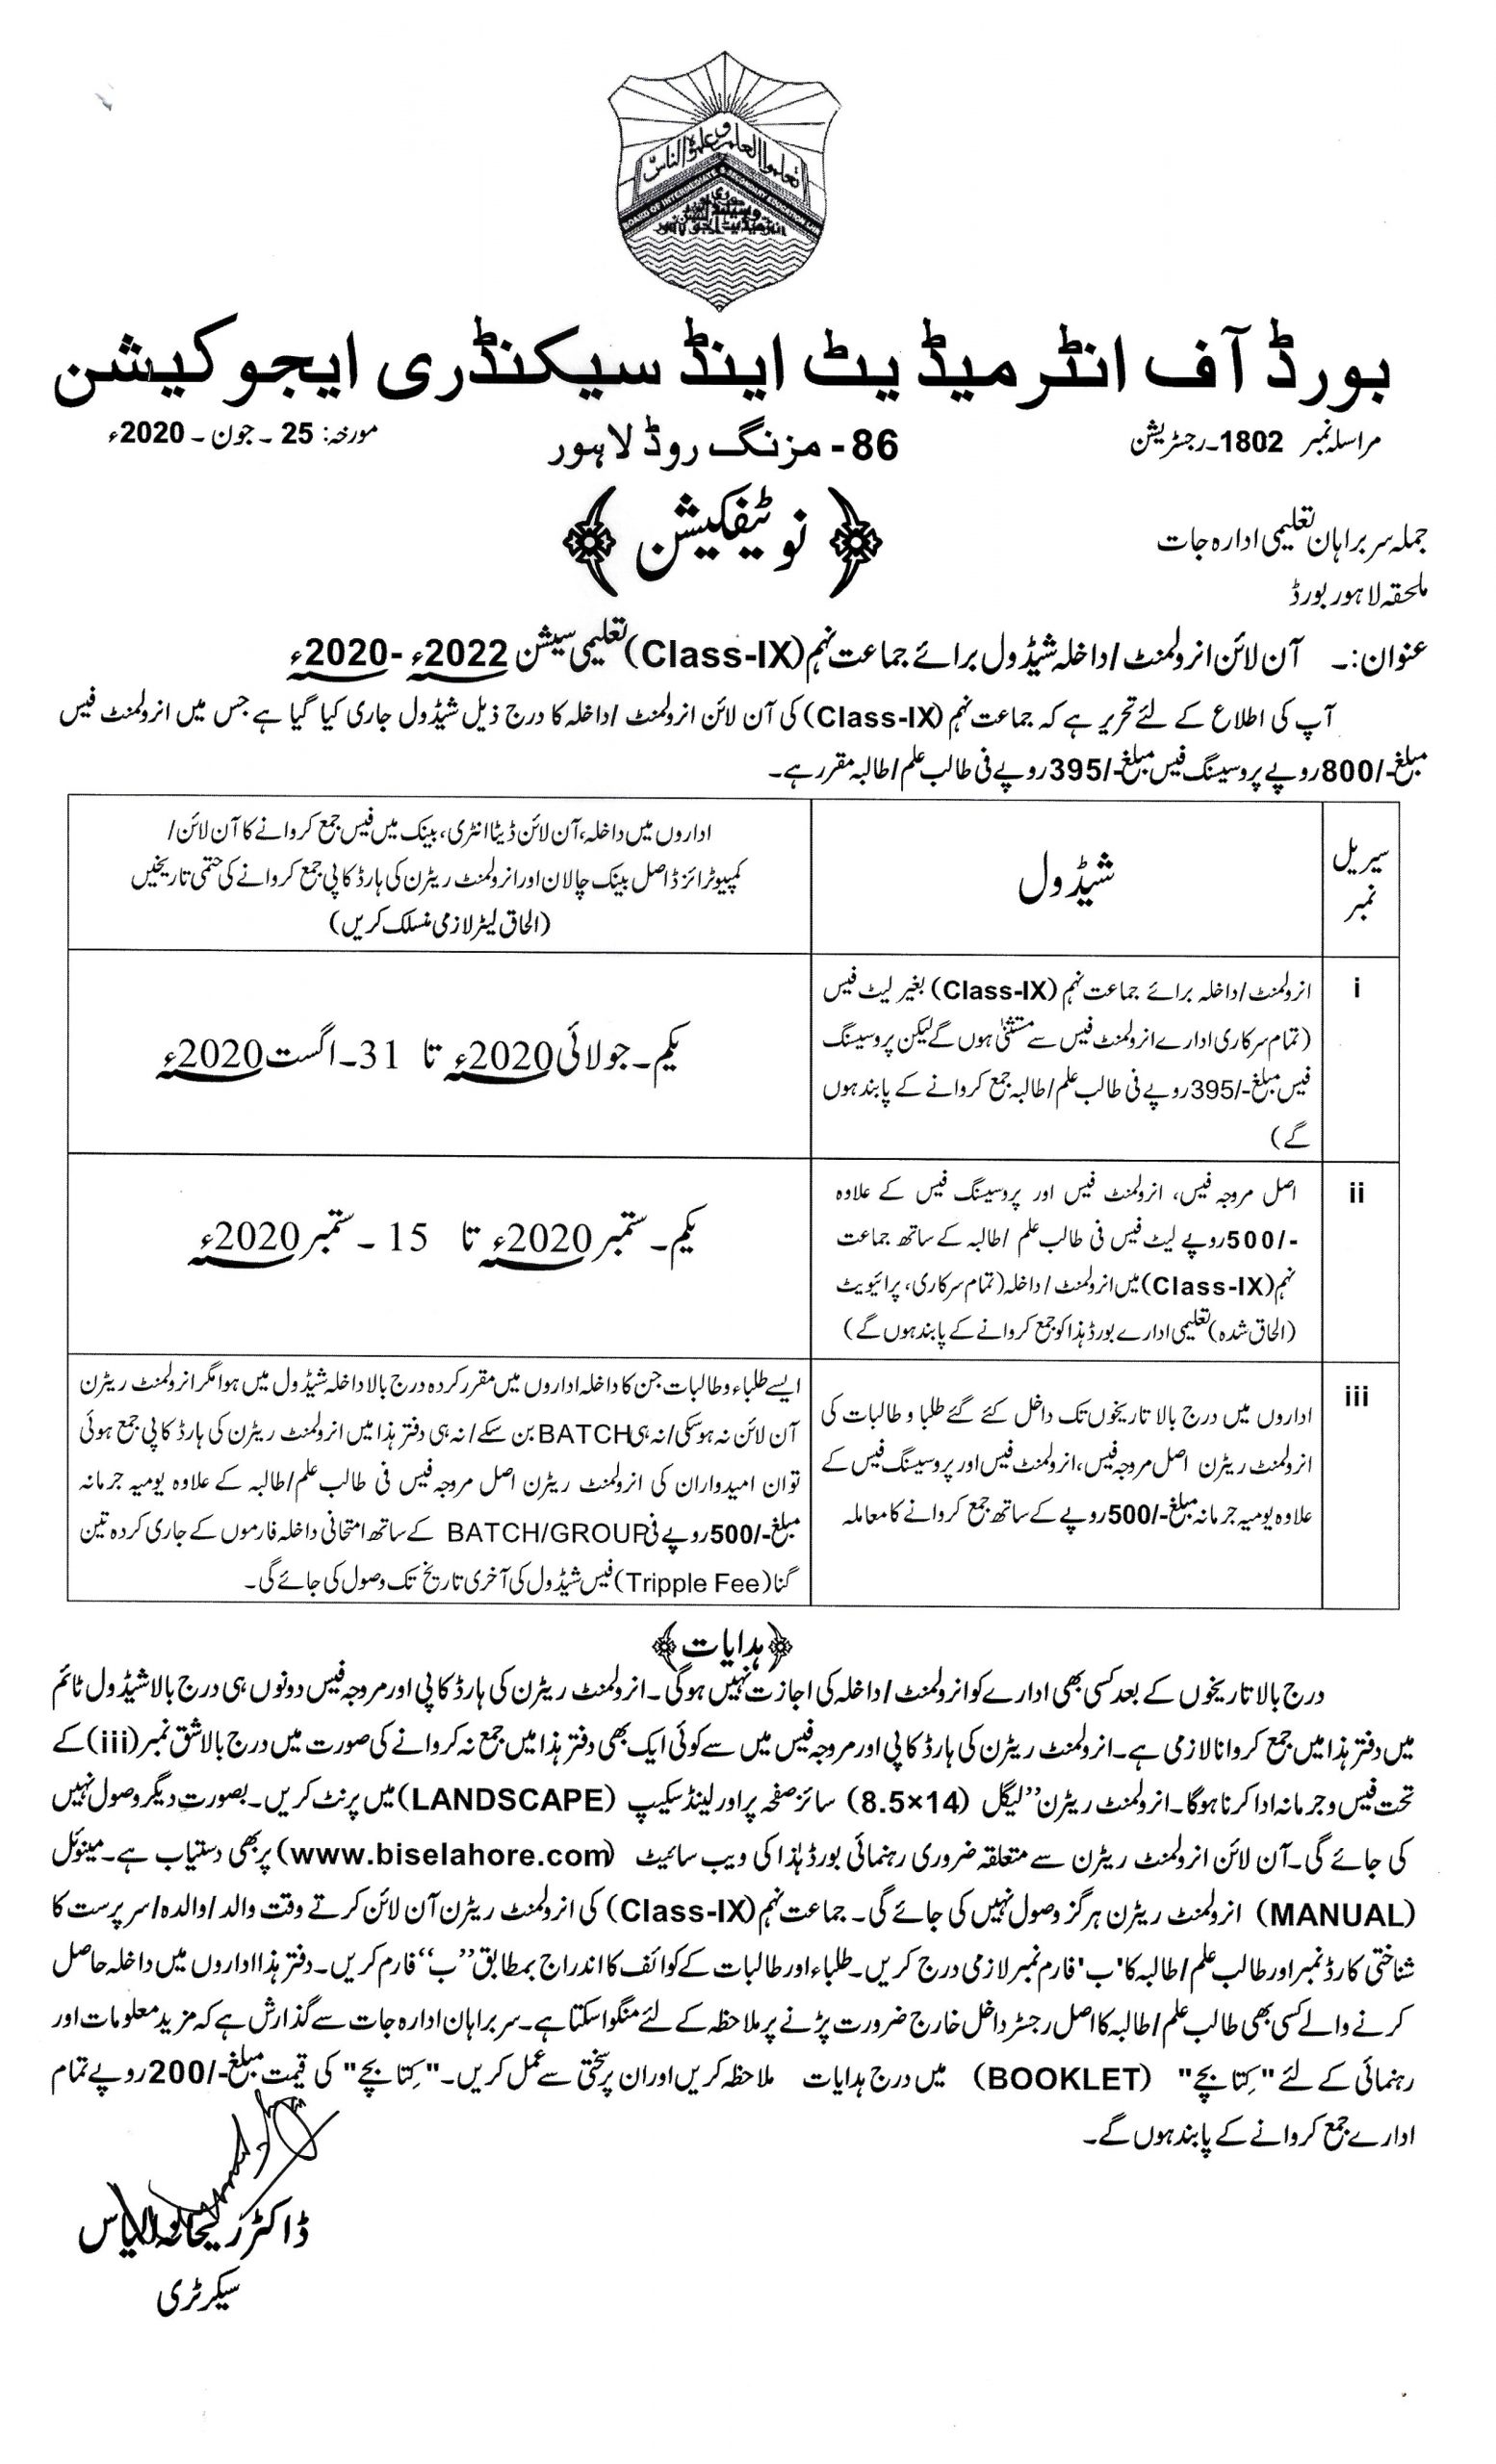 BISE Lahore Online Enrollment 2020-22 Schedule of Admission Class 9th